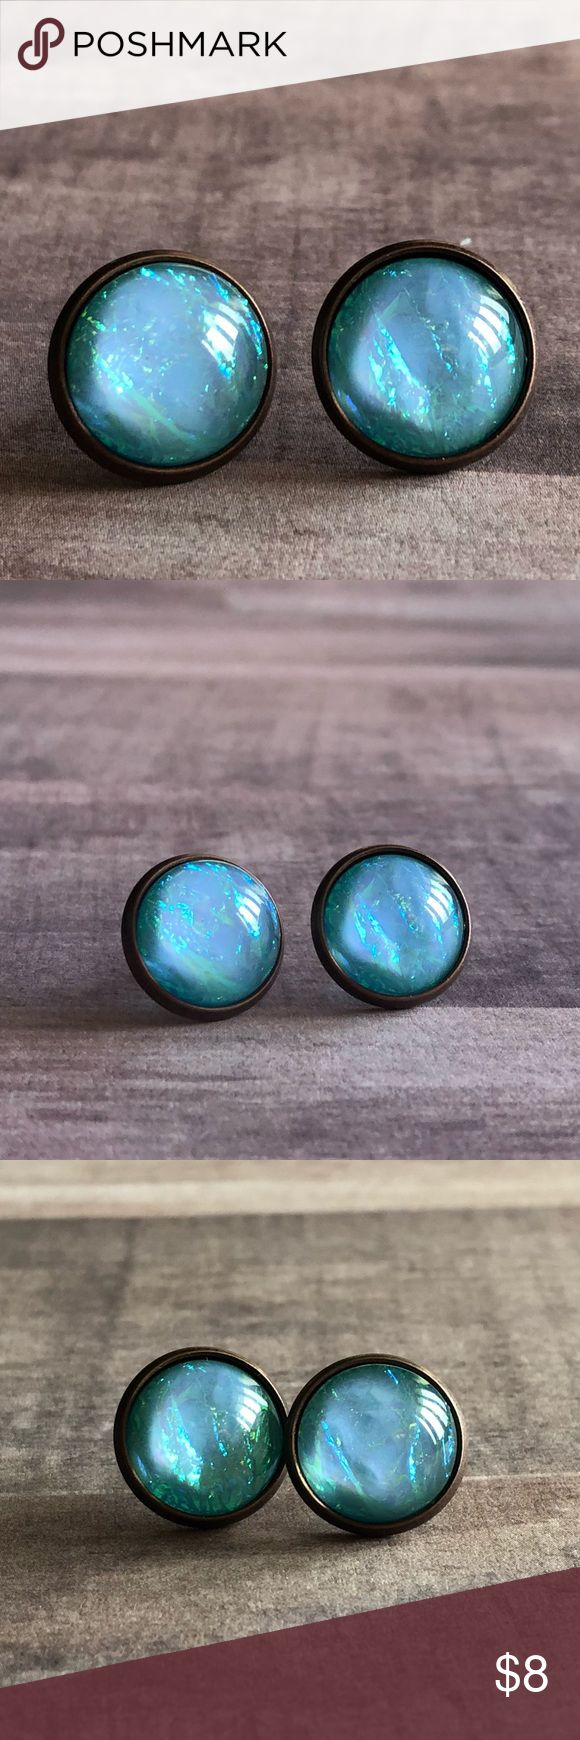 """🆕Baby Blue Opal Stone Copper Stud Earrings! New, Handmade by Me! Gorgeous Baby Blue Opal Stone in a Copper Post Back Style Earring. Stone Reflects Beautiful Colors in Different Lighting! Approx. 12mm or 1/2"""" Size; Can make in any Style Back Shown!📸These are my pic's of the Actual items!  ▶️1 For $8, 2 For $13, 3 For $15!◀️  ▪️3-$15 is only for items listed as such▪️ ▪️Post Back for Pierced Ears ▪️Nickel, Lead & Cadmium Free  *NO TRADES *Price is FIRM as Listed!  *Sales are Final-Please…"""